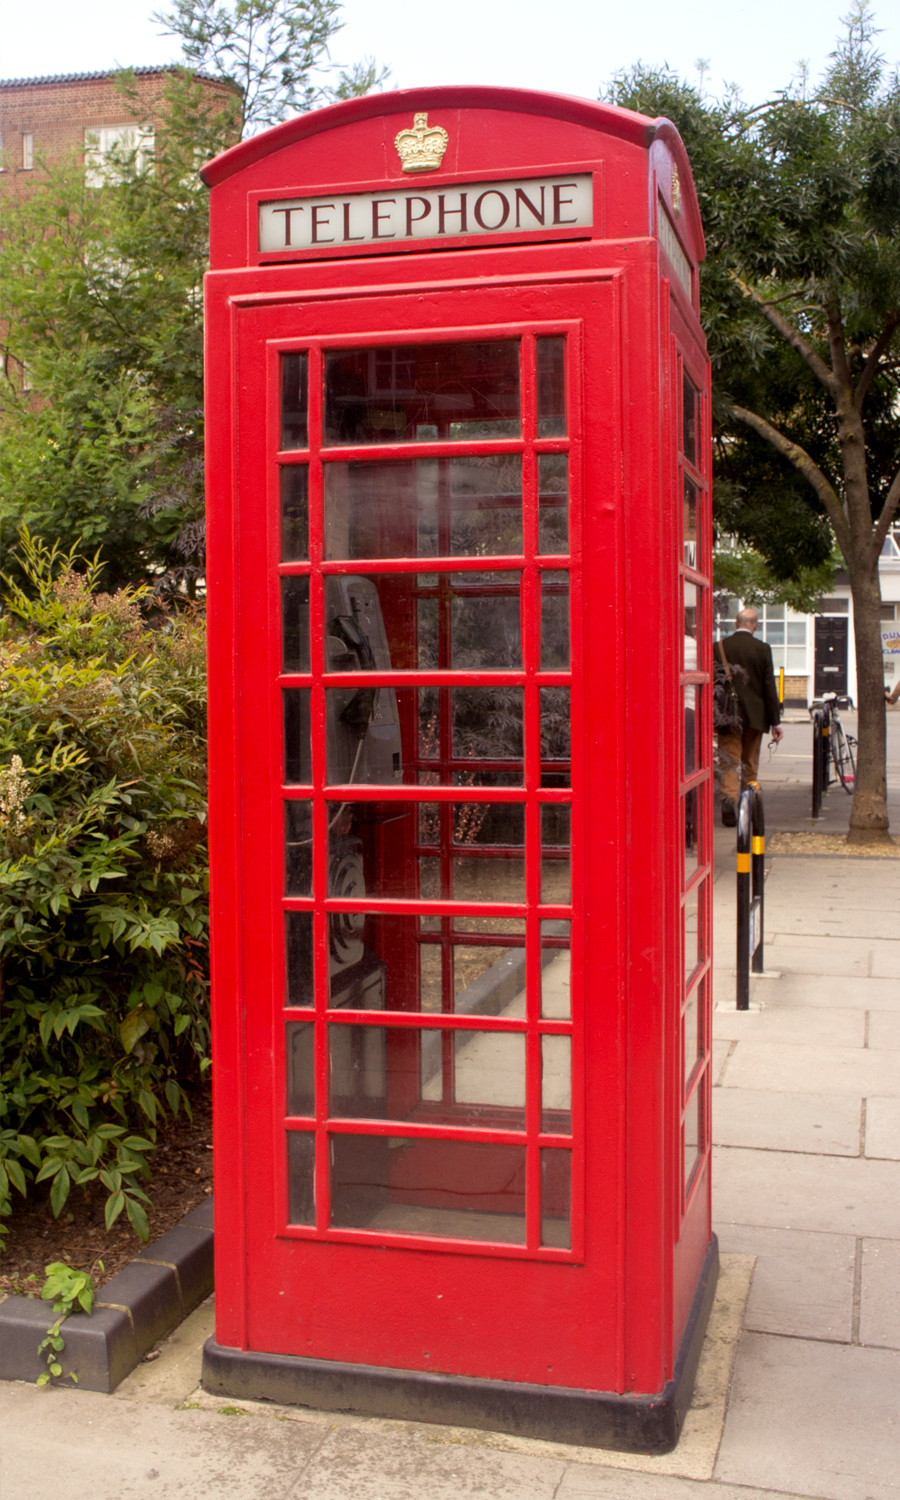 2014-europe-london-telephone